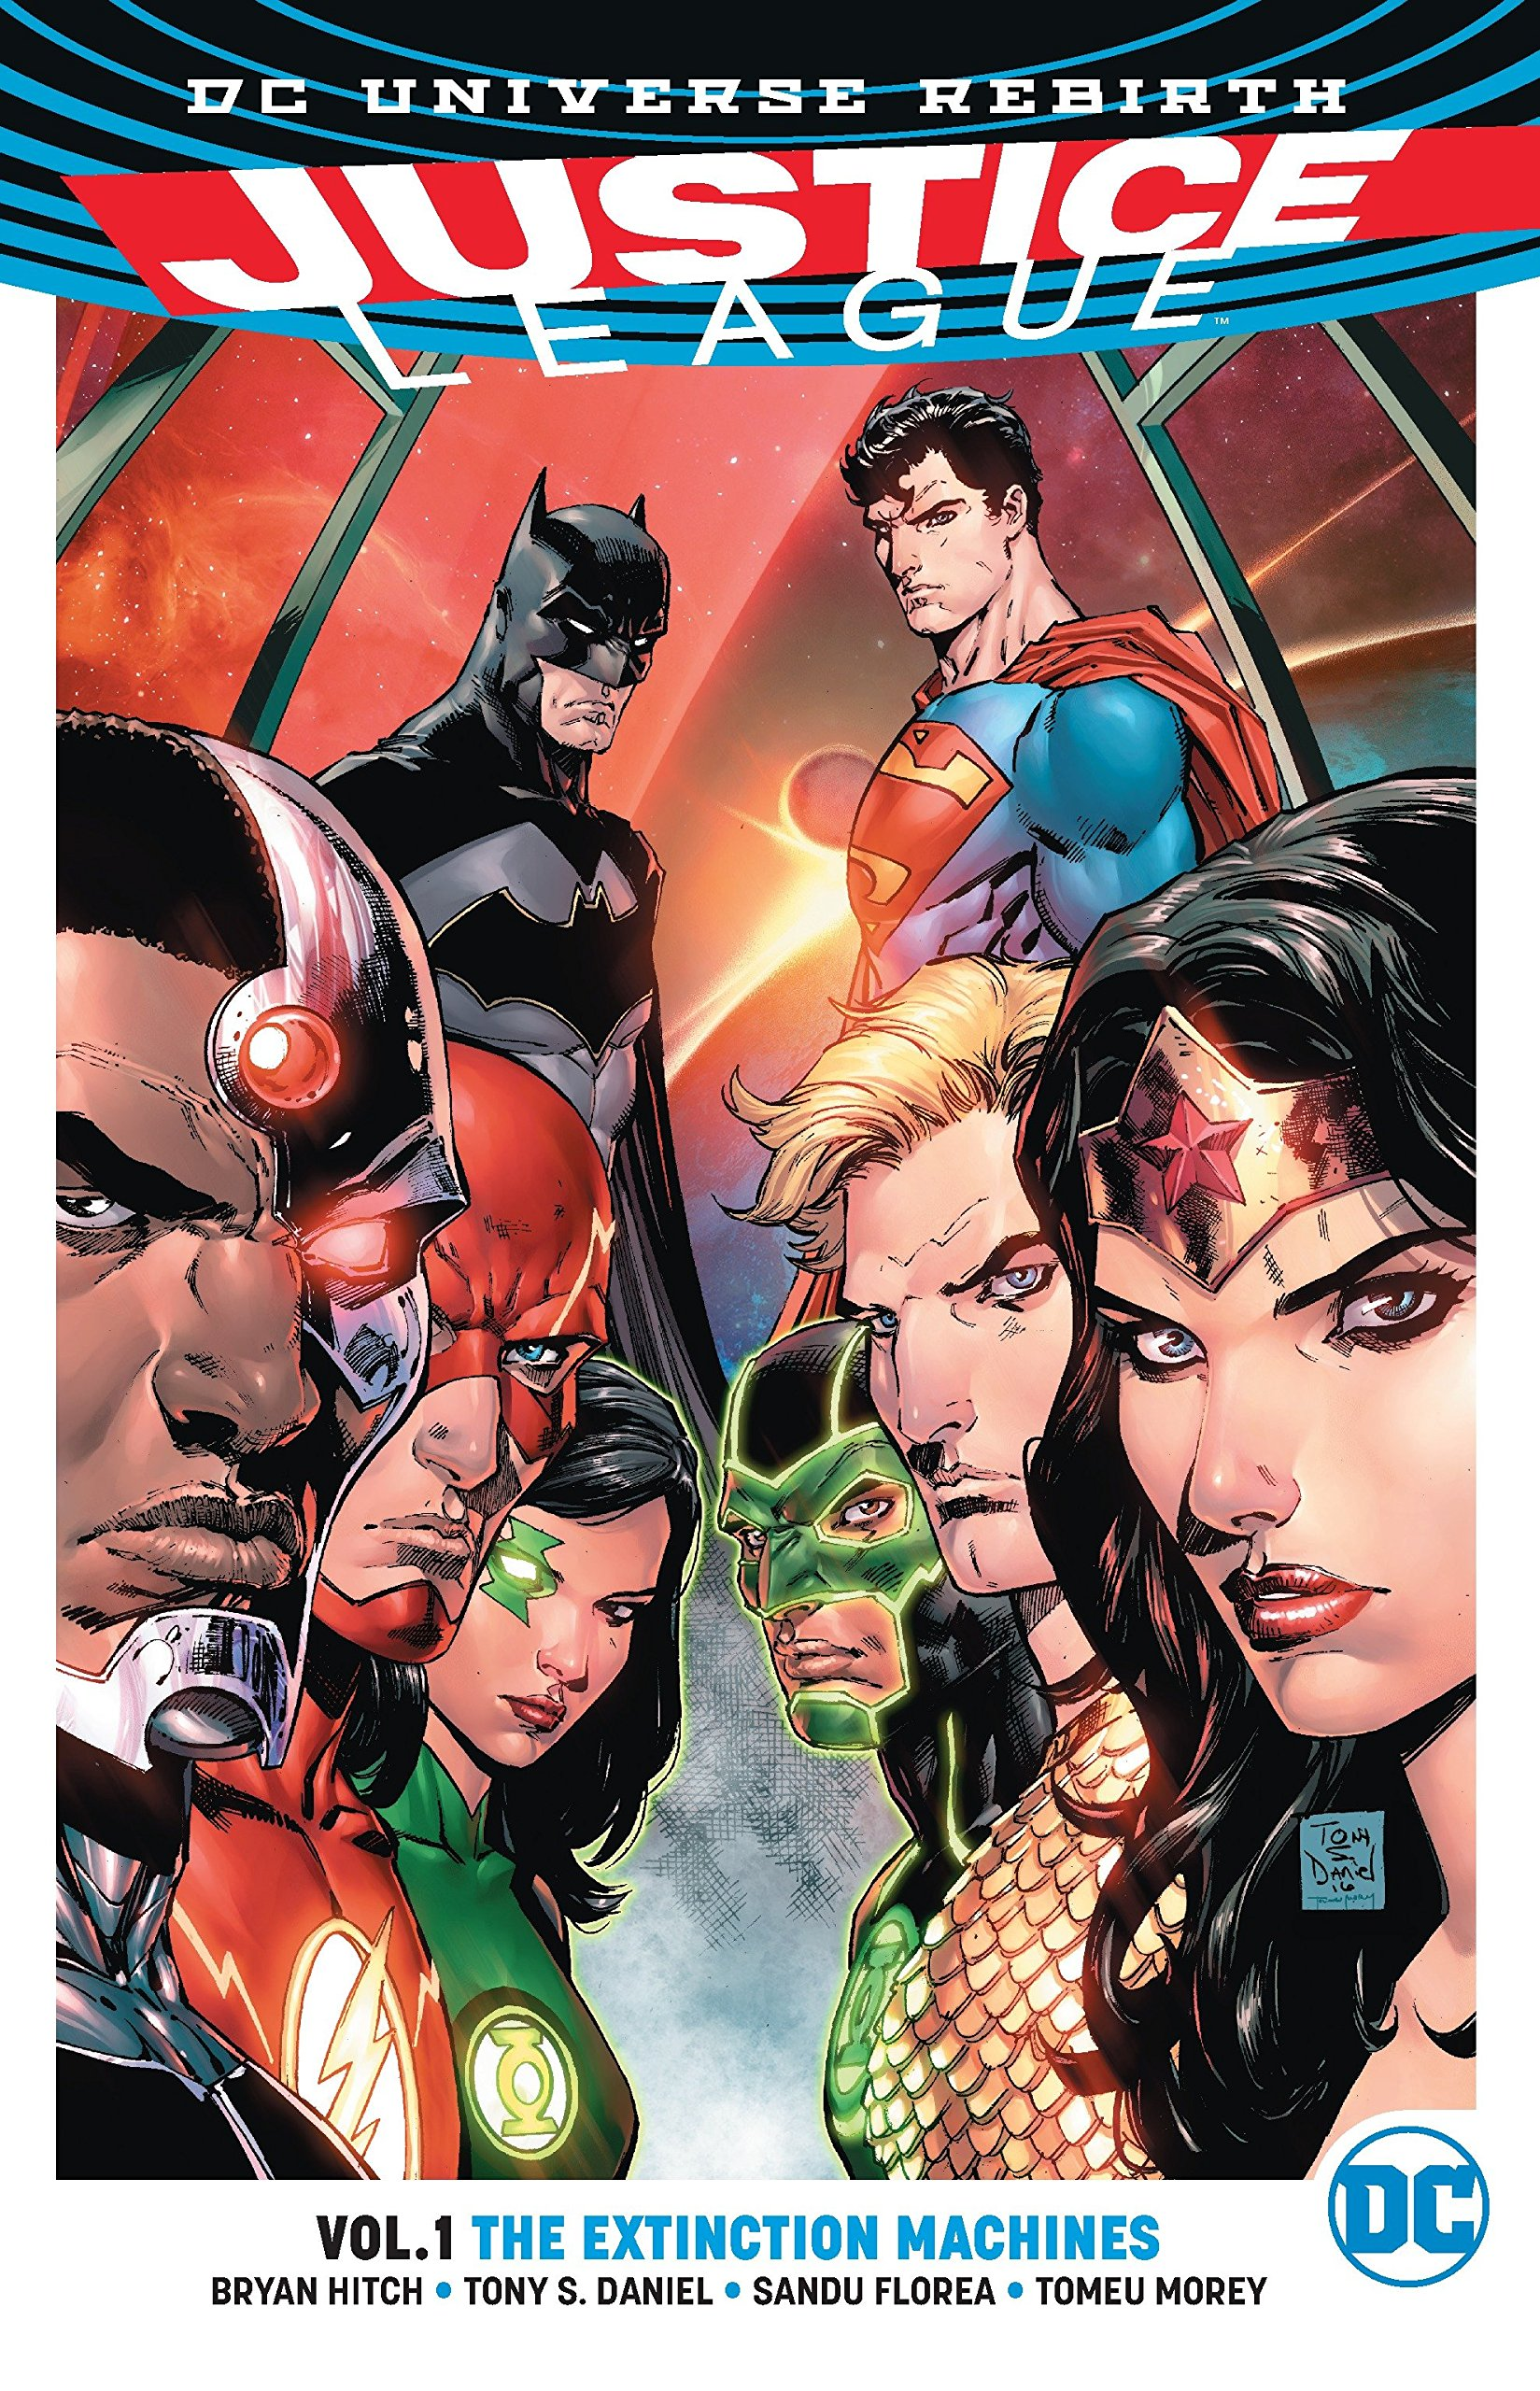 Justice League Vol. 1: The Extinction Machines (Rebirth) (Justice League: Dc Universe Rebirth, Band 1)